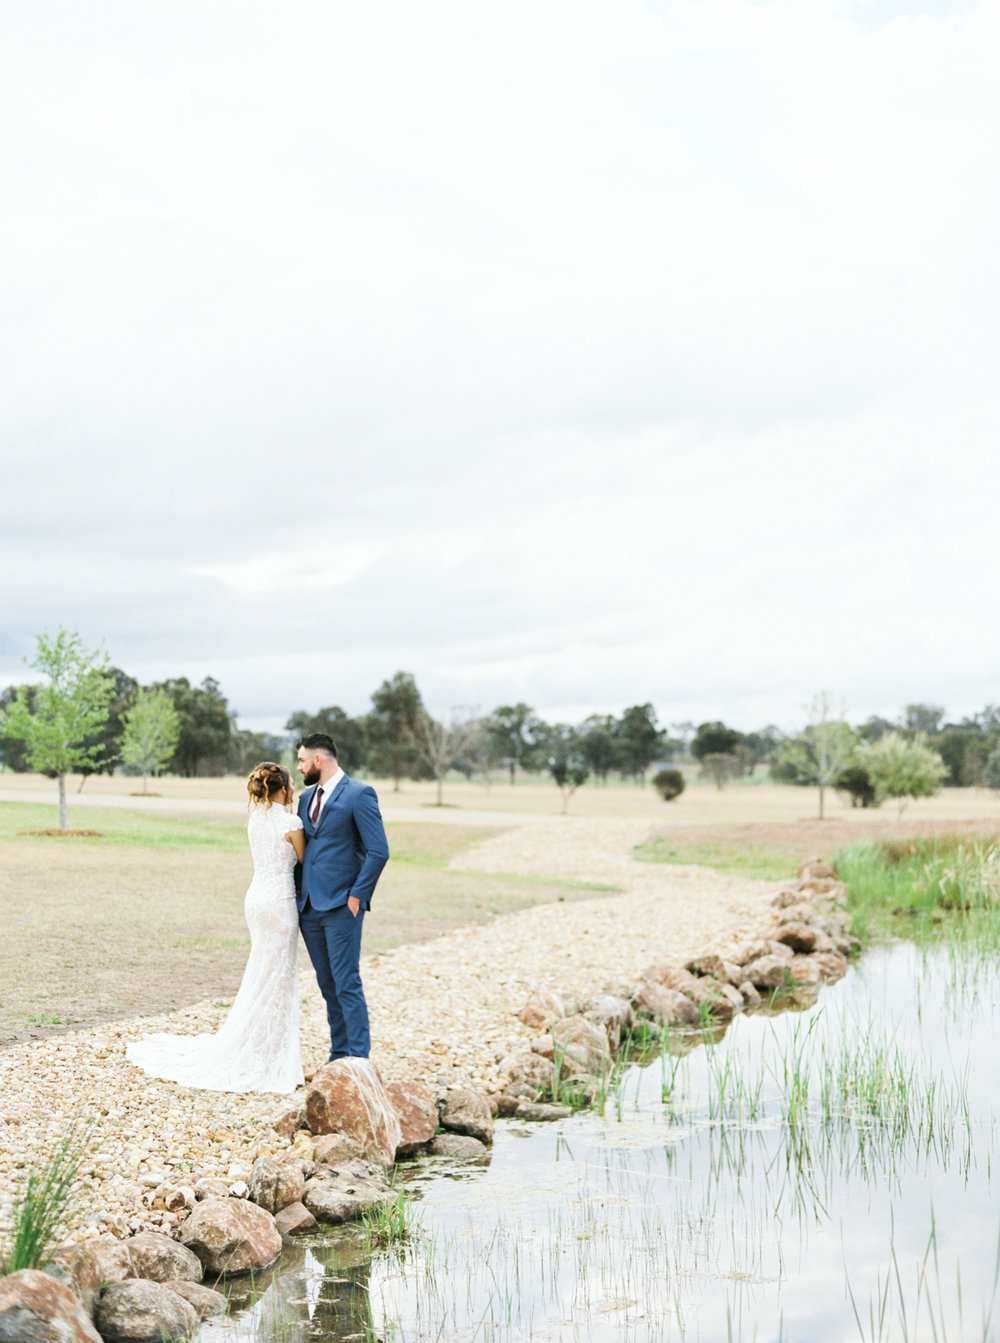 00419- Fine Art Film Hunter Valley Mudgee Destination Wedding Photographer Sheri McMahon.jpg